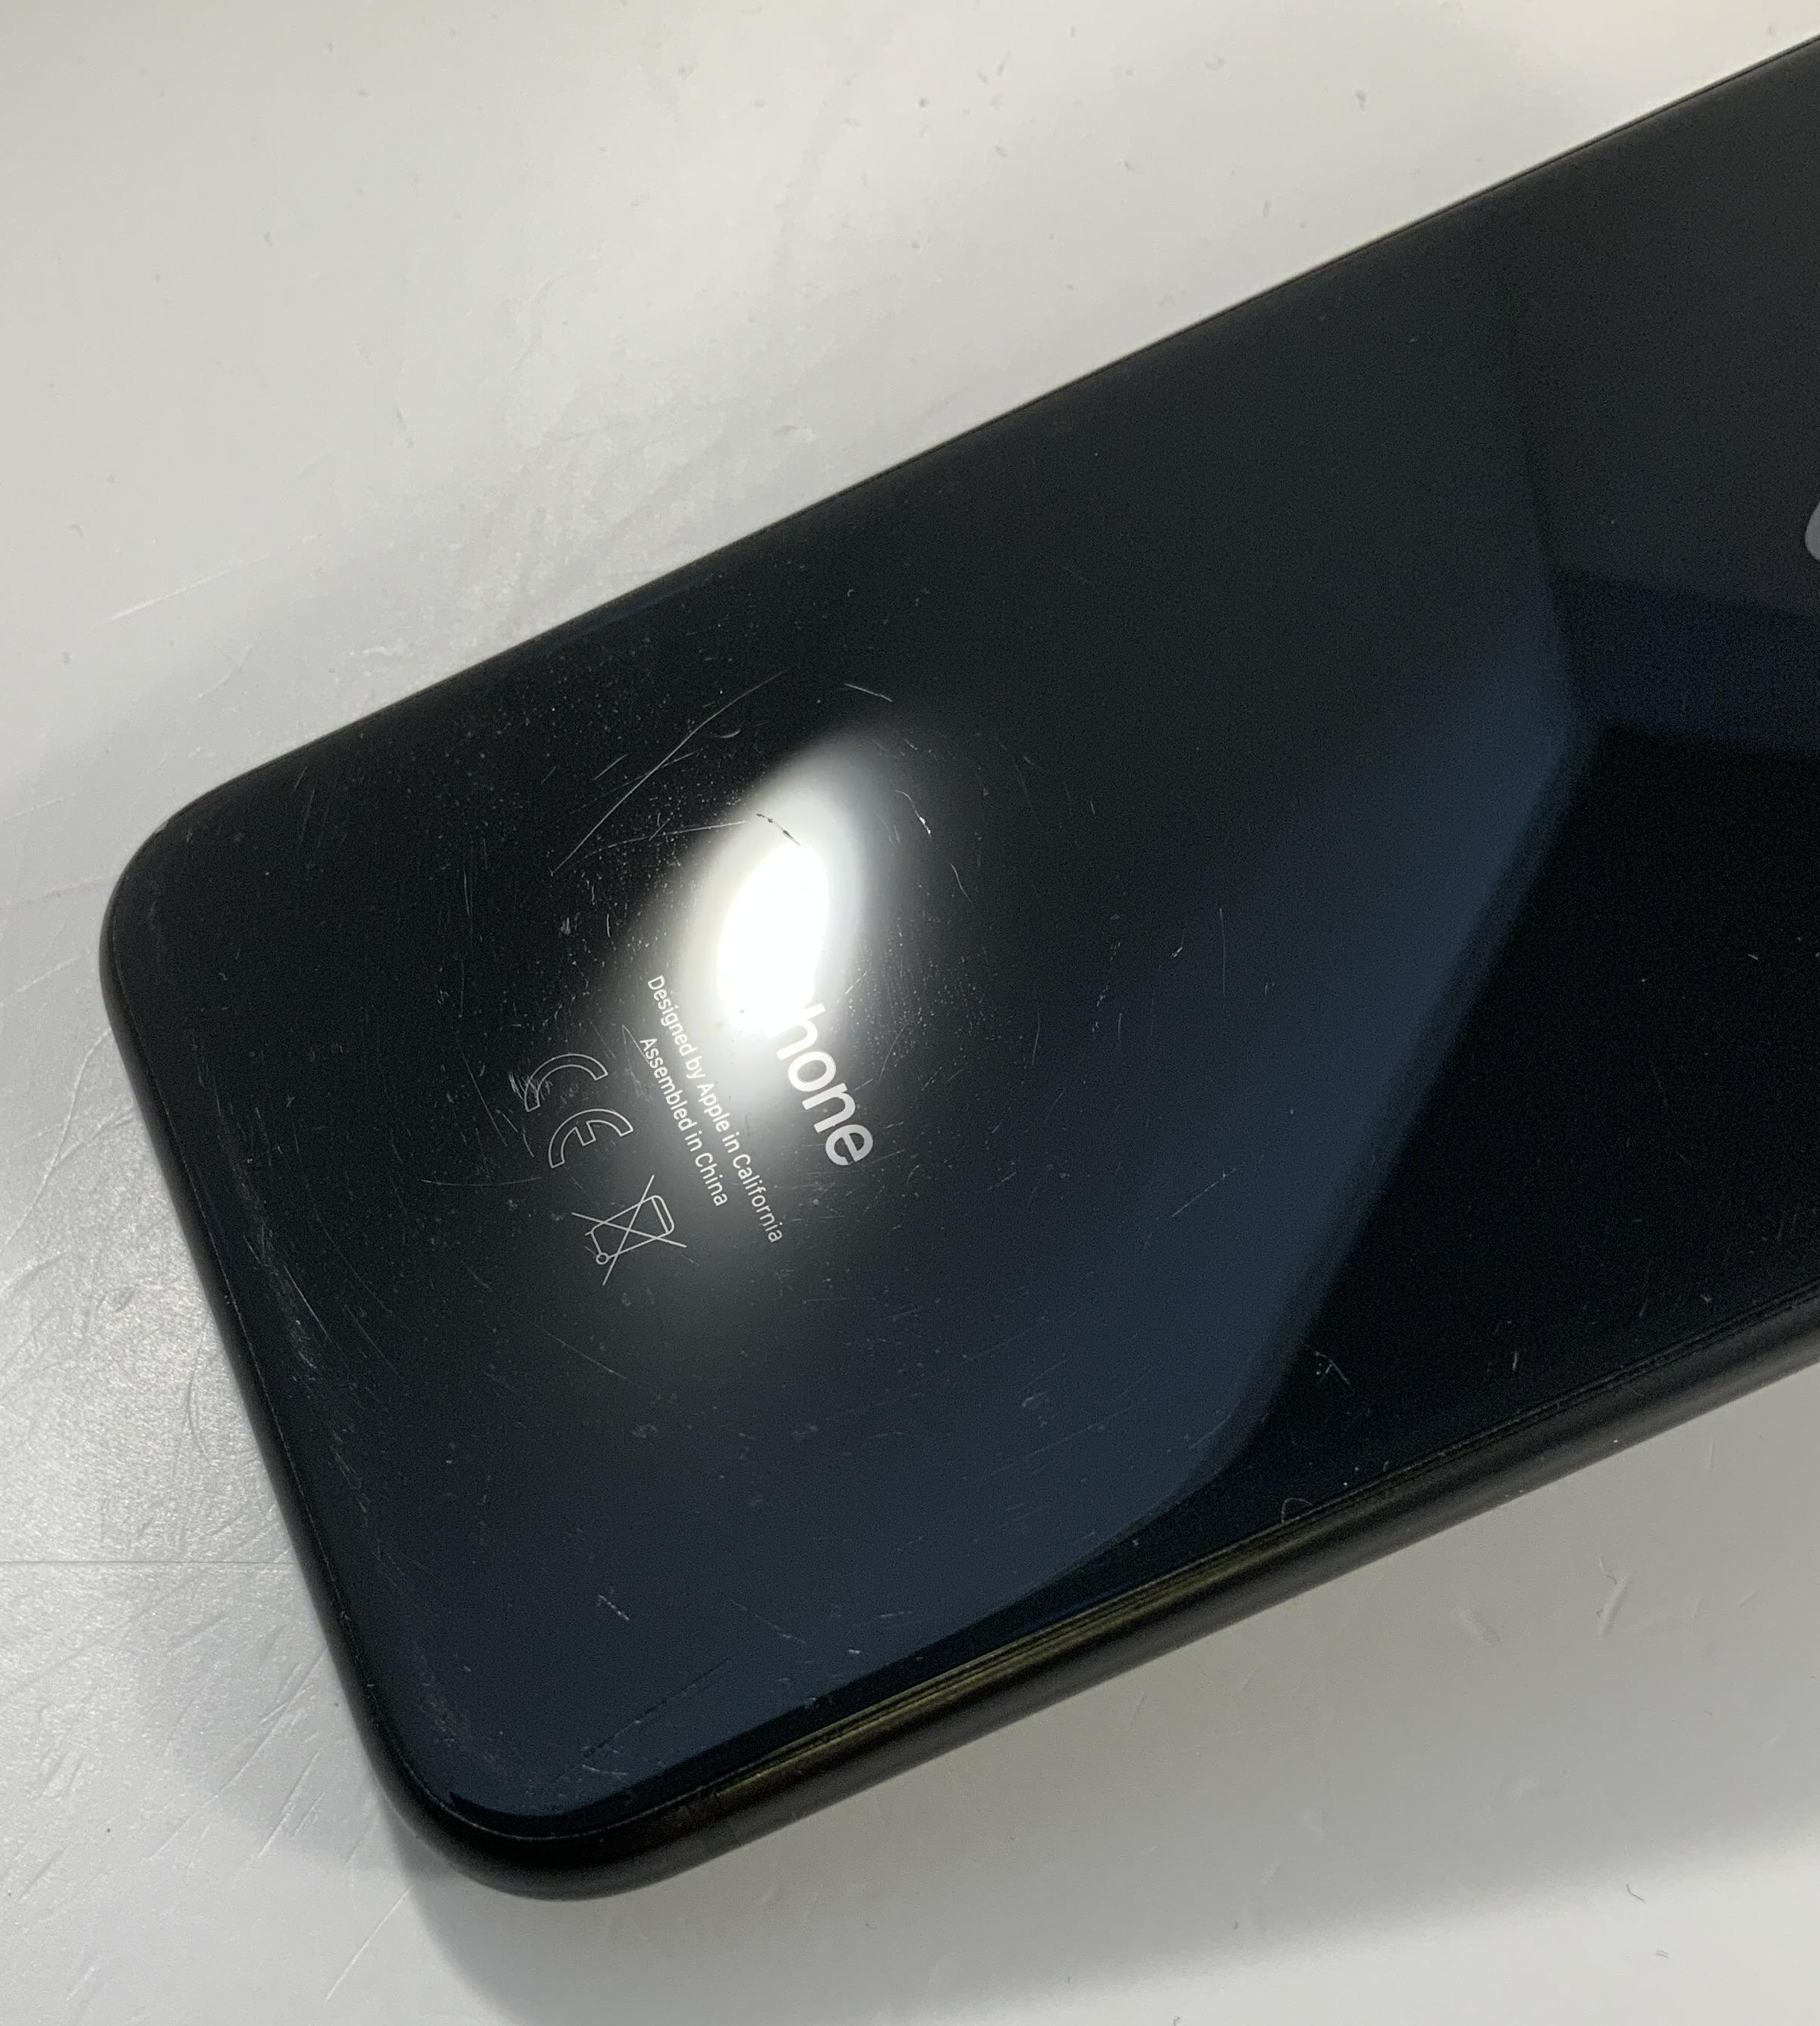 iPhone XR 64GB, 64GB, Black, image 4